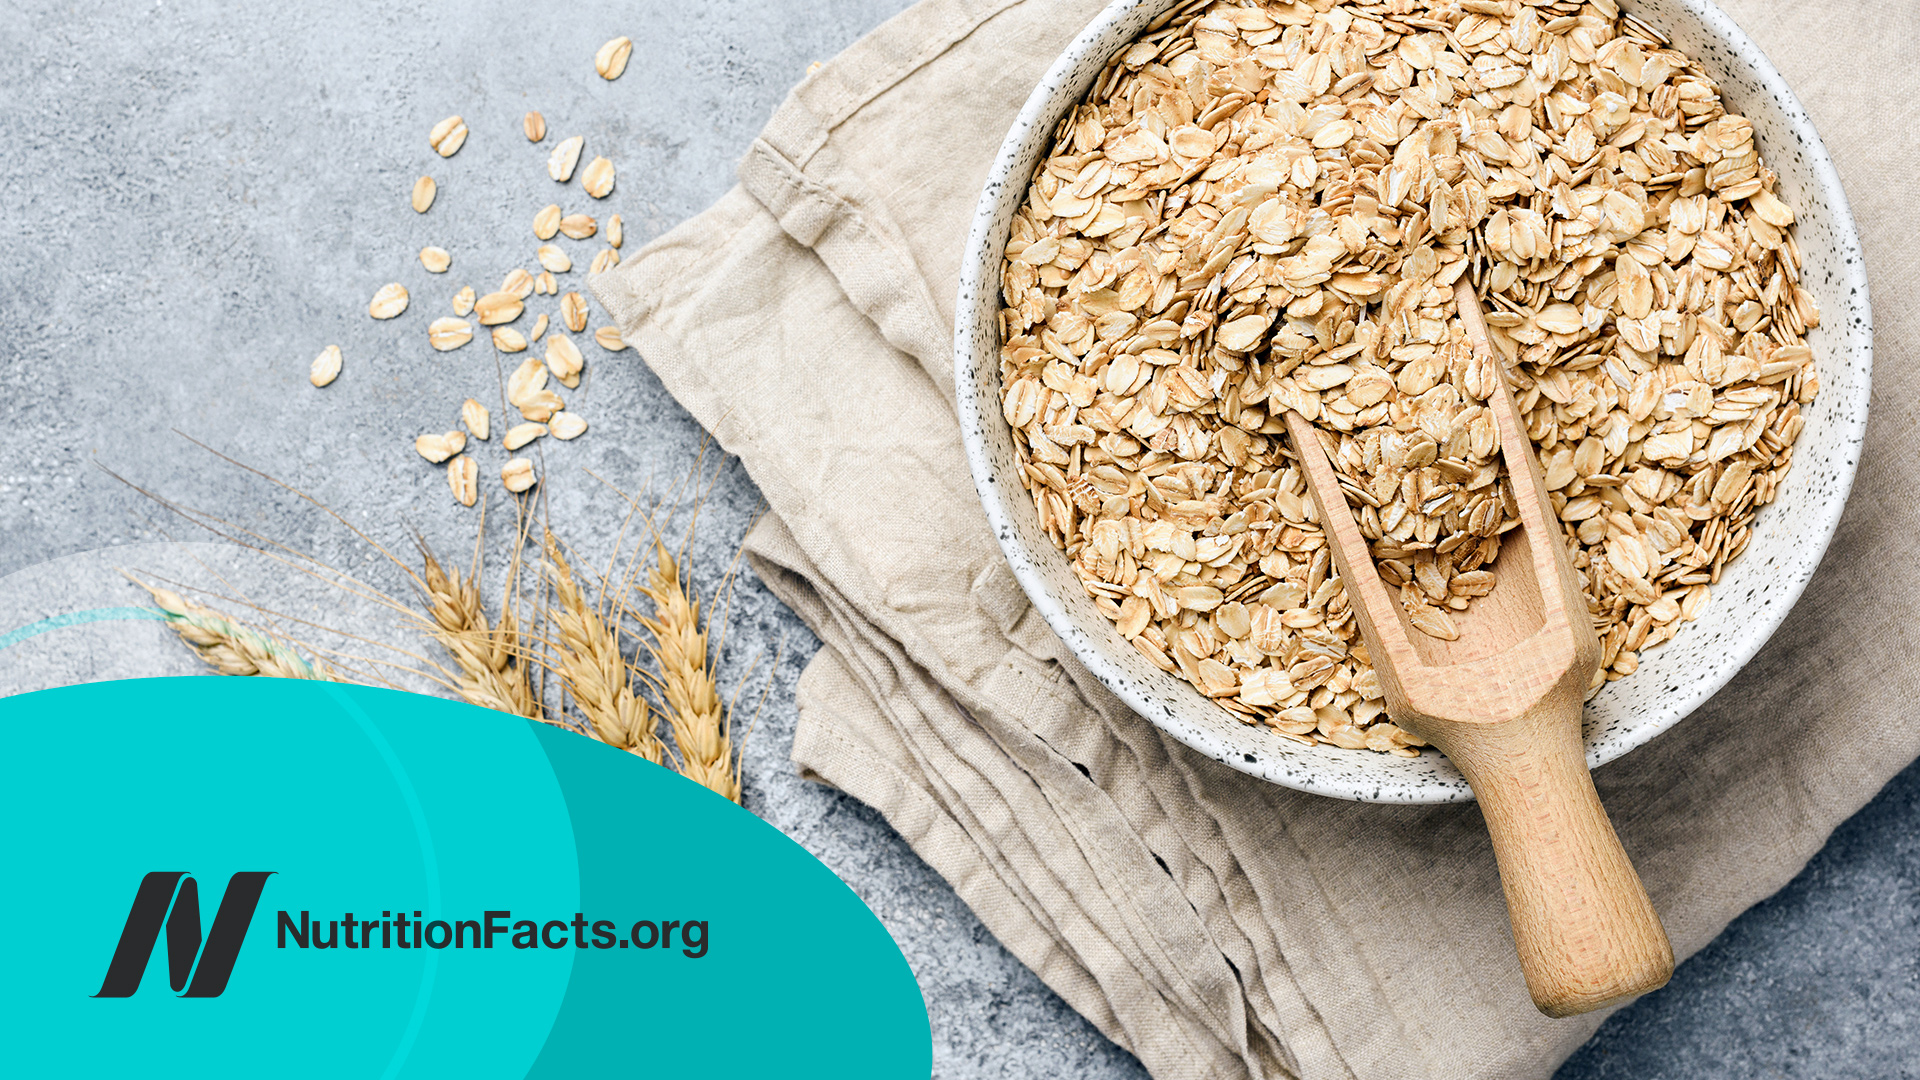 Oat flakes, oats or rolled oats in a bowl on a stone countertop